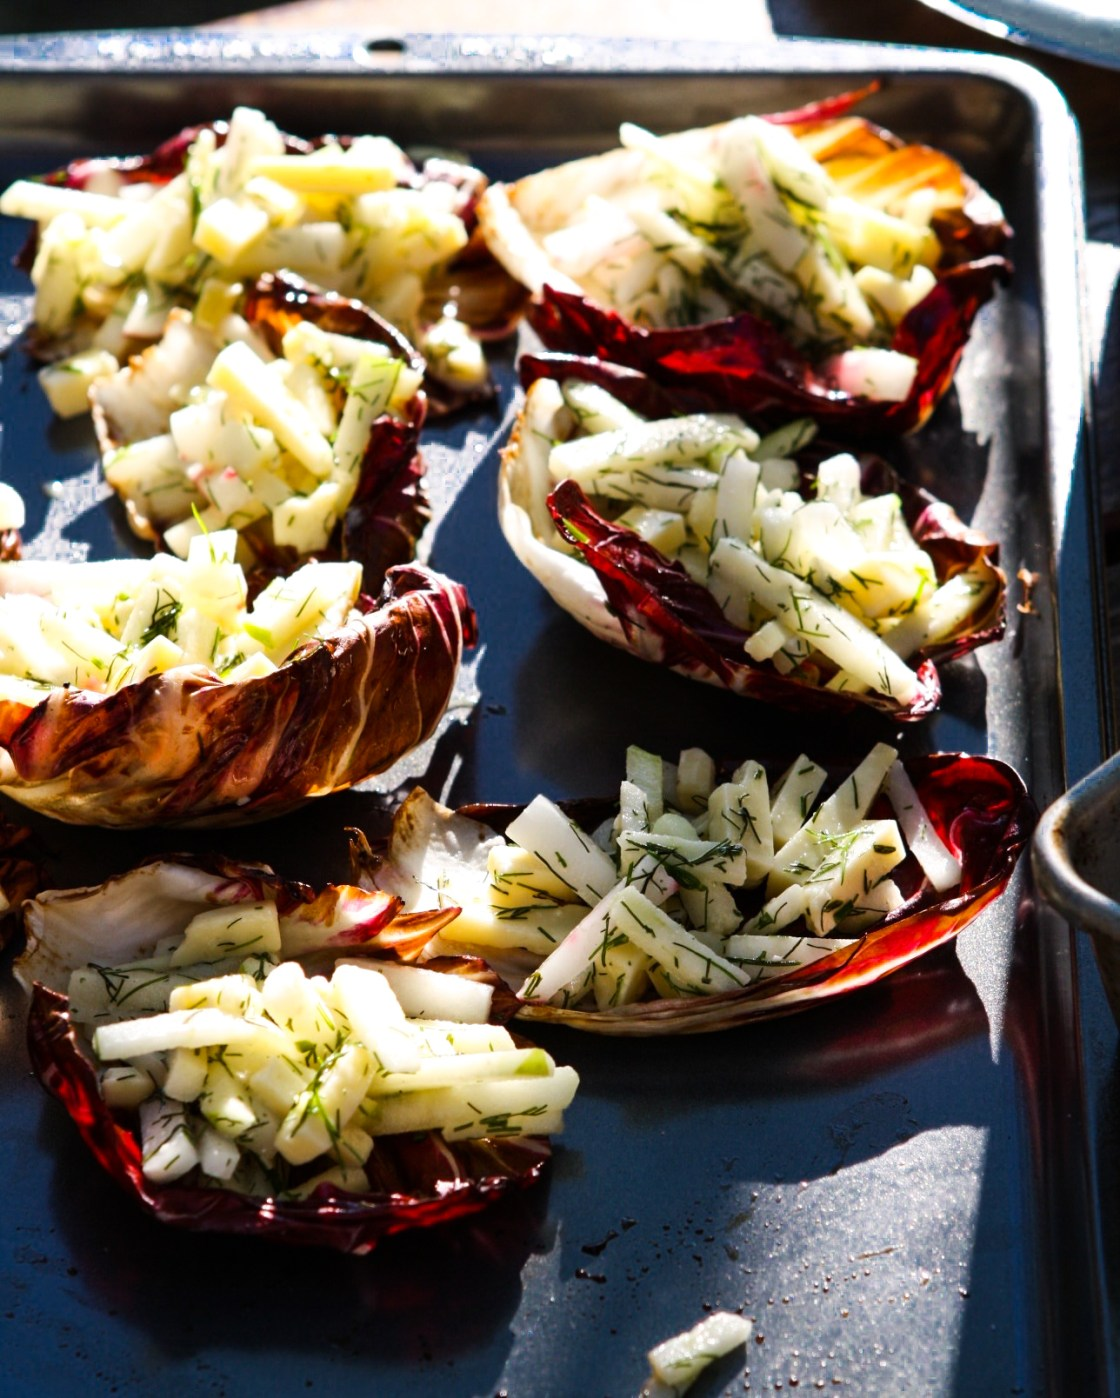 Casual Cocktail Party - Radicchio Cups | Zestful Kitchen